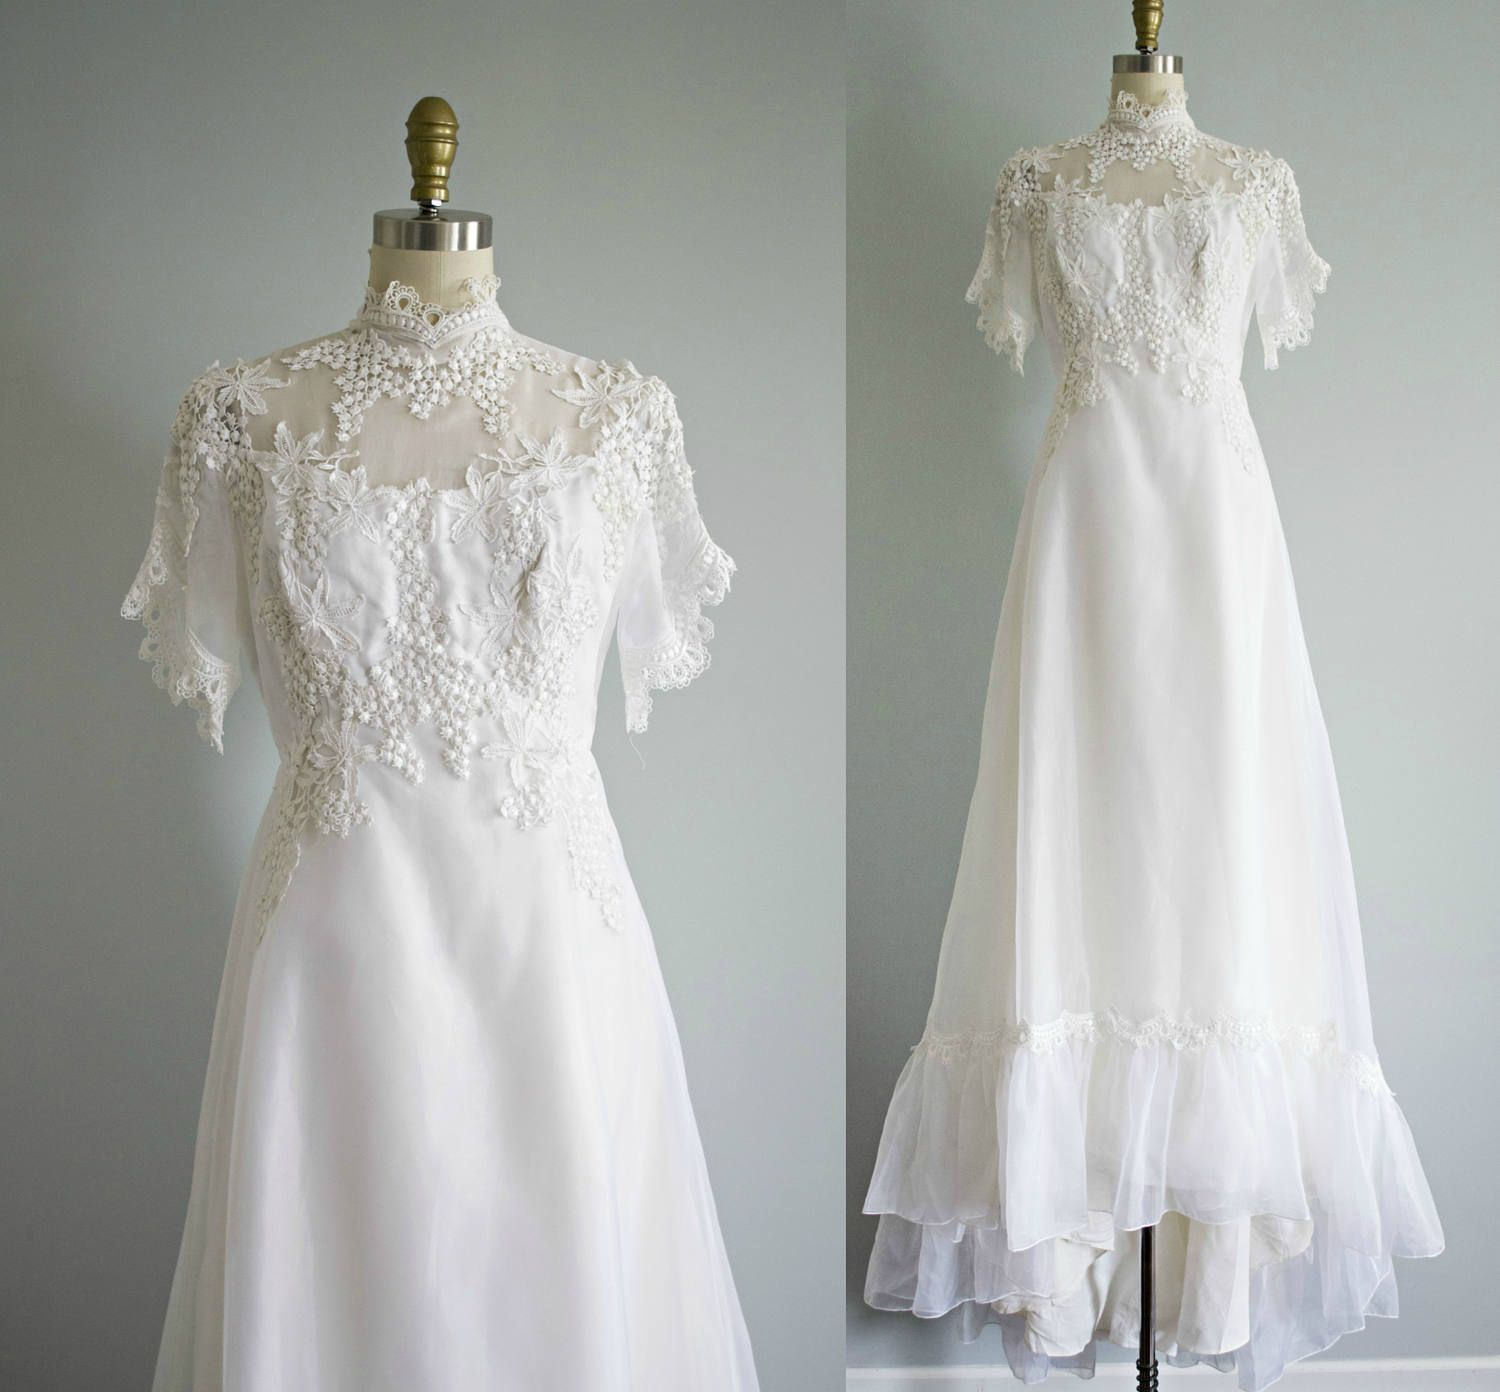 Vintage 70s Lace Wedding Dress White Lace Chiffon Short Etsy Wedding Gowns With Sleeves Wedding Dresses Lace Wedding Dresses [ 1392 x 1500 Pixel ]